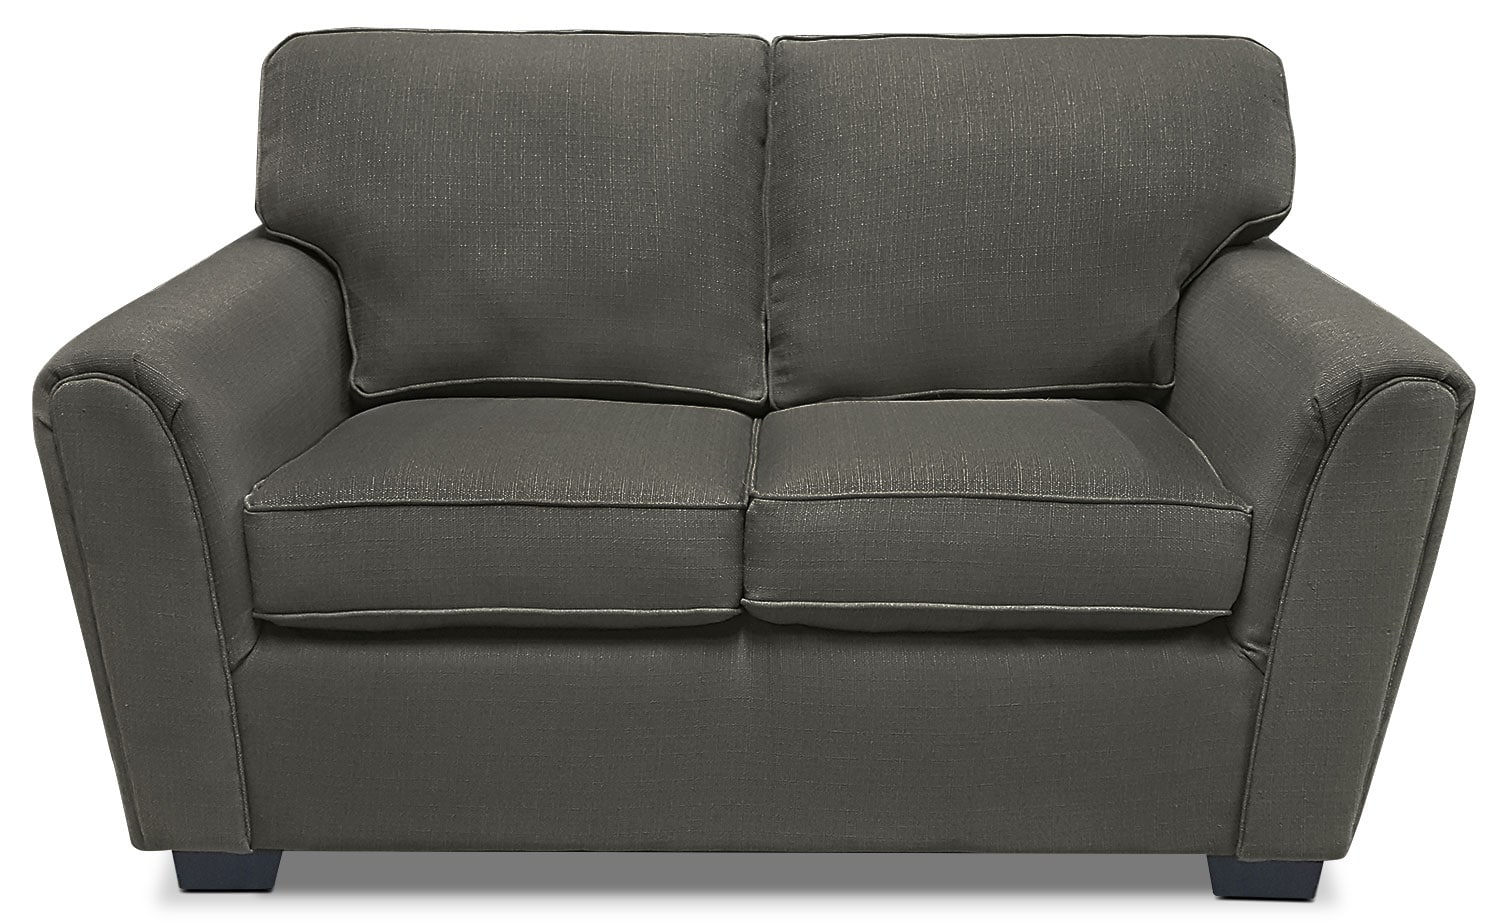 Brynn Linen-Look Fabric Loveseat – Grey